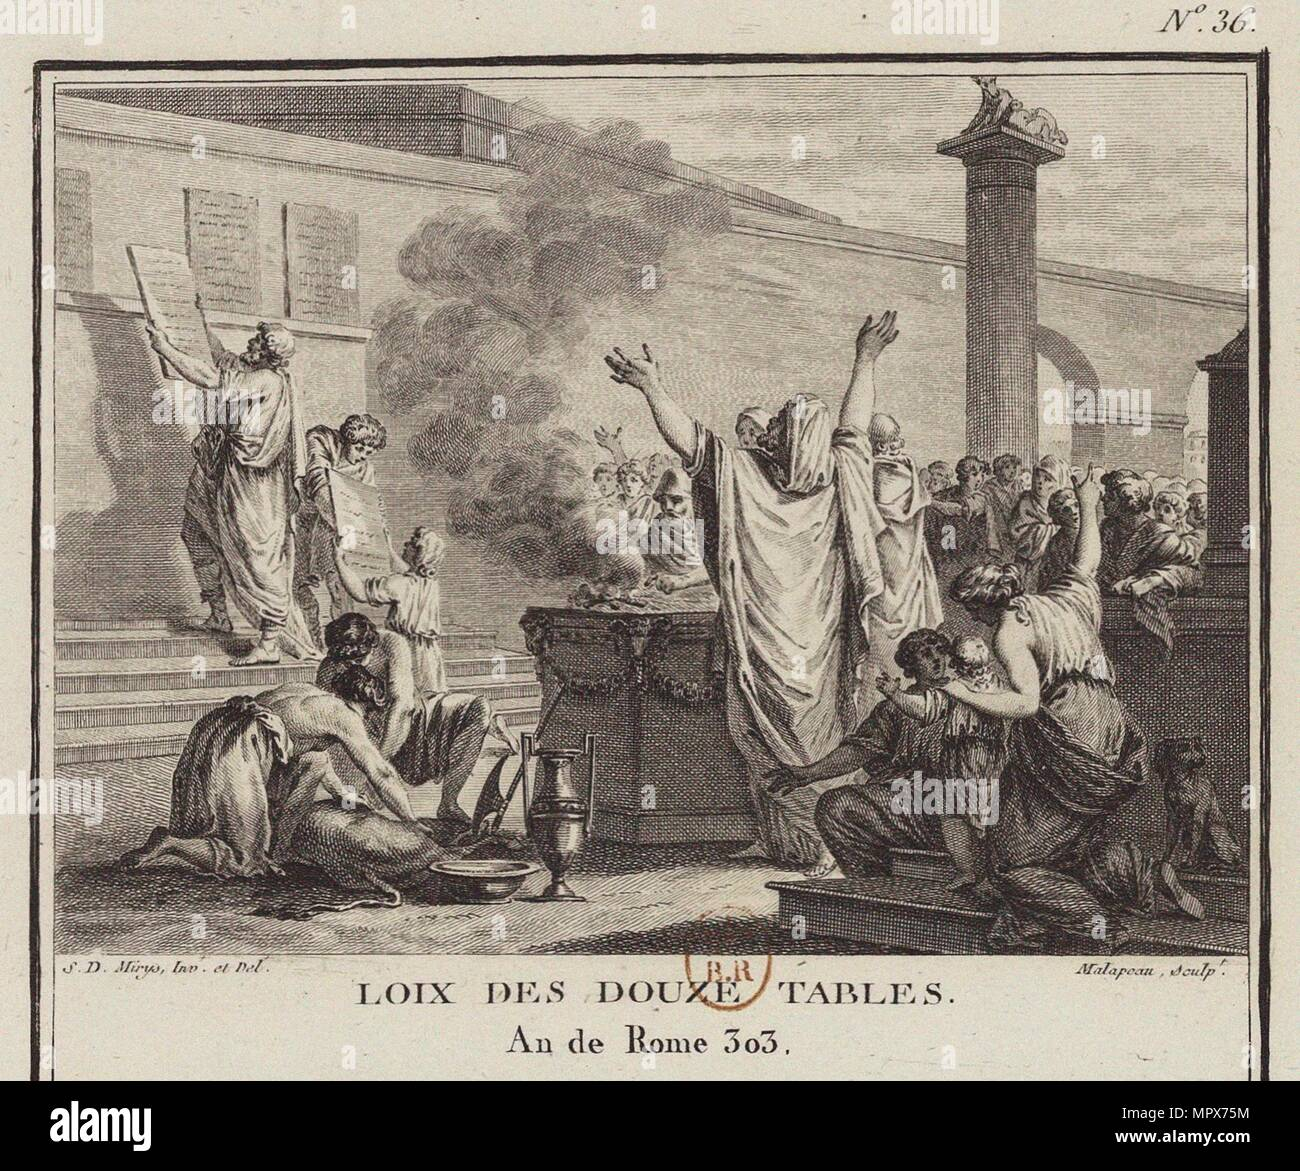 The Law of the Twelve Tables (Leges Duodecim Tabularum or Duodecim Tabulae), 1799. - Stock Image